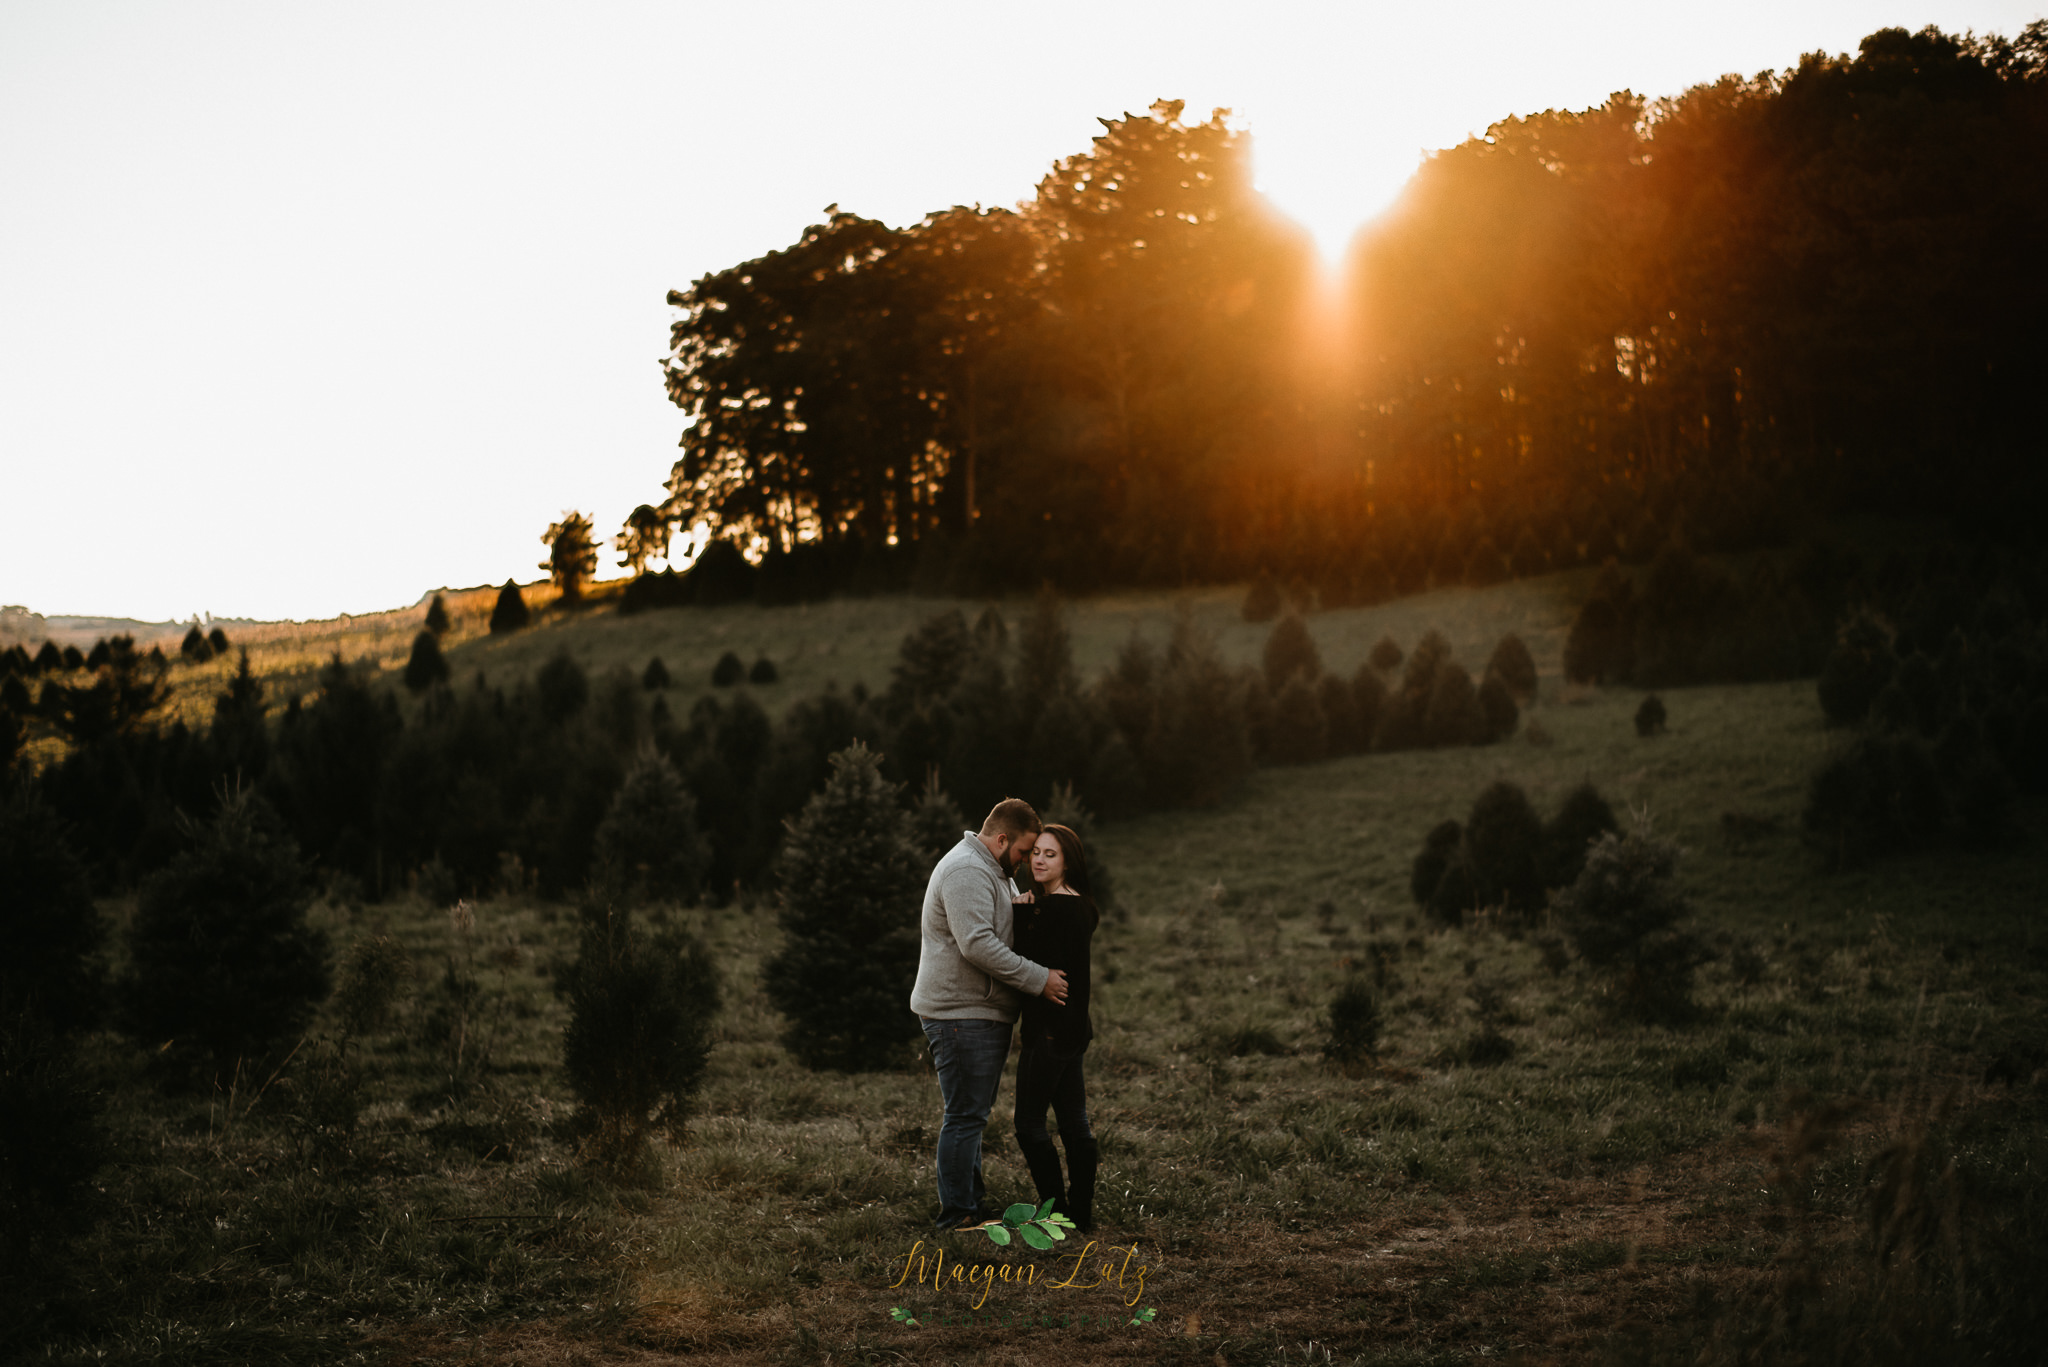 Poconos-NEPA-Wedding-Engagement-Photographer-session-at-Blue-Ridge-Estate-Vineyard-Winery-10.jpg